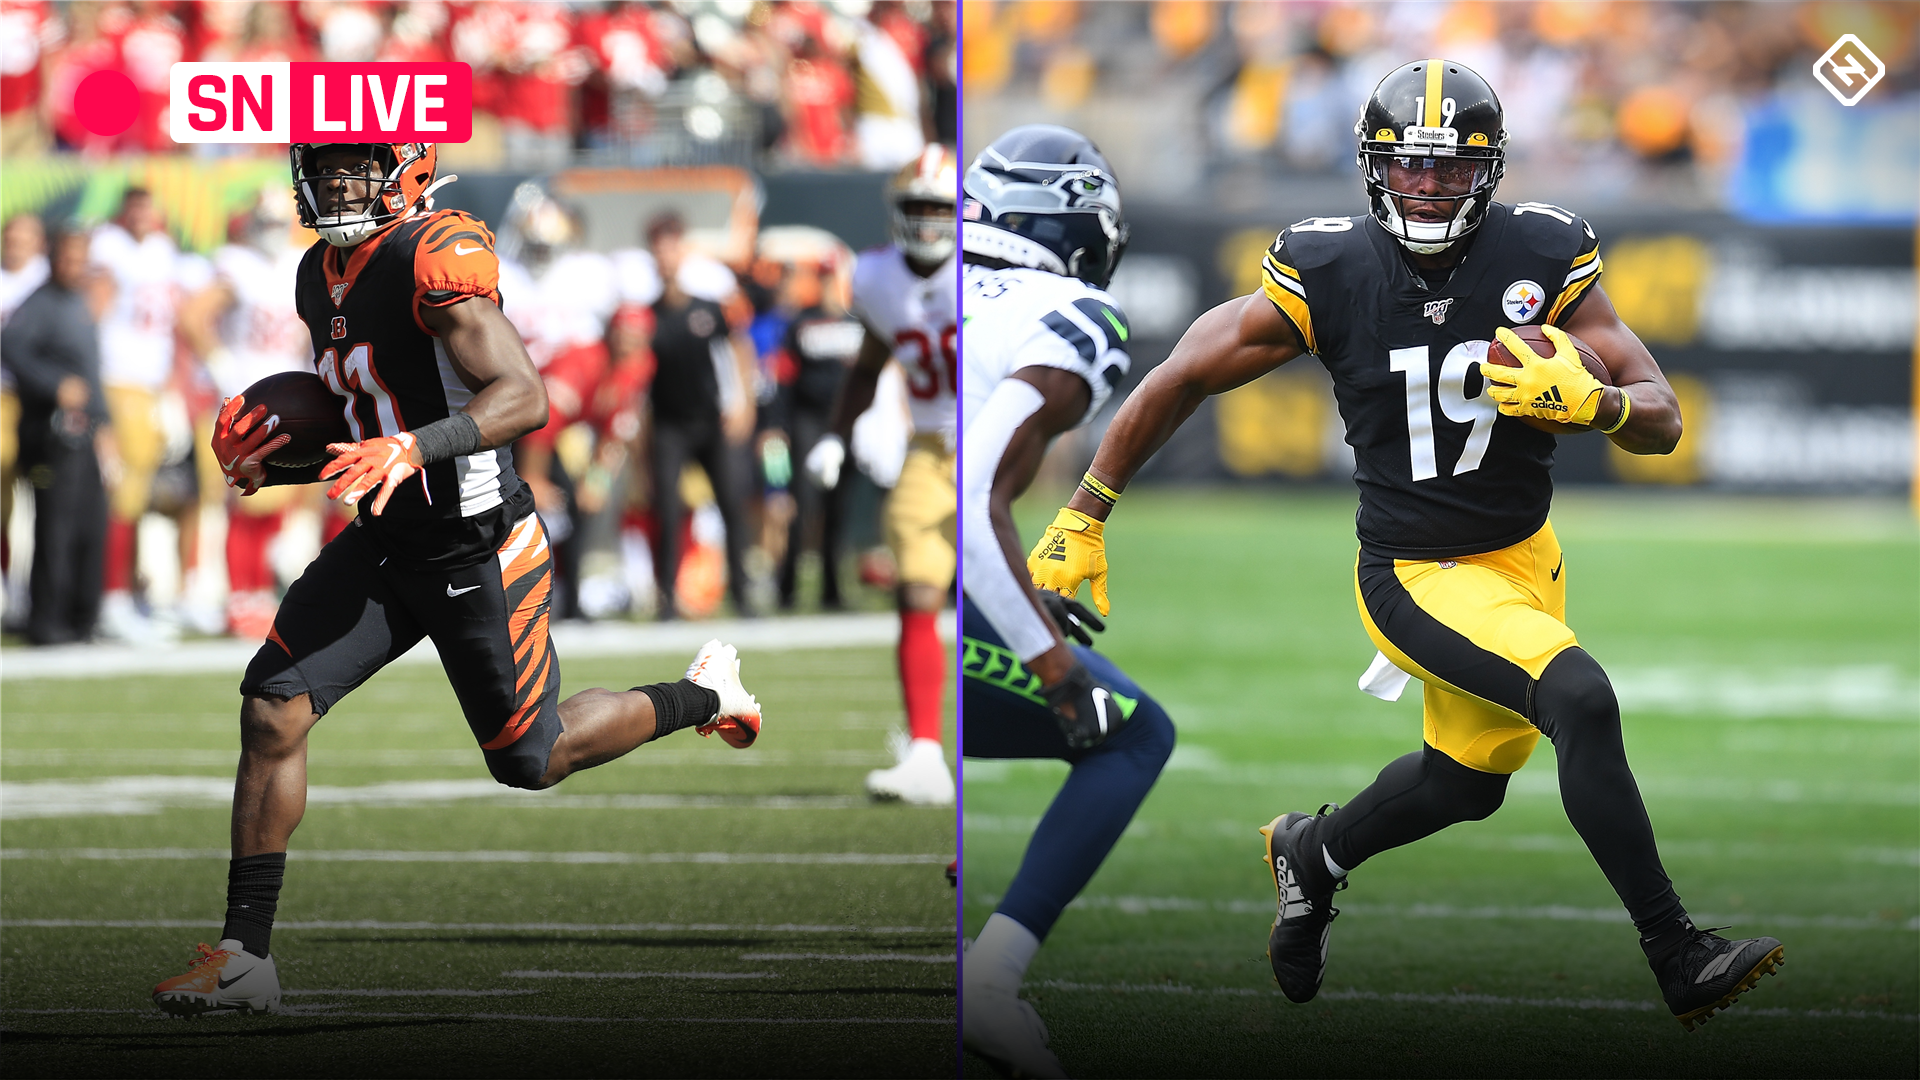 Bengals vs. Steelers Live score, updates, highlights from